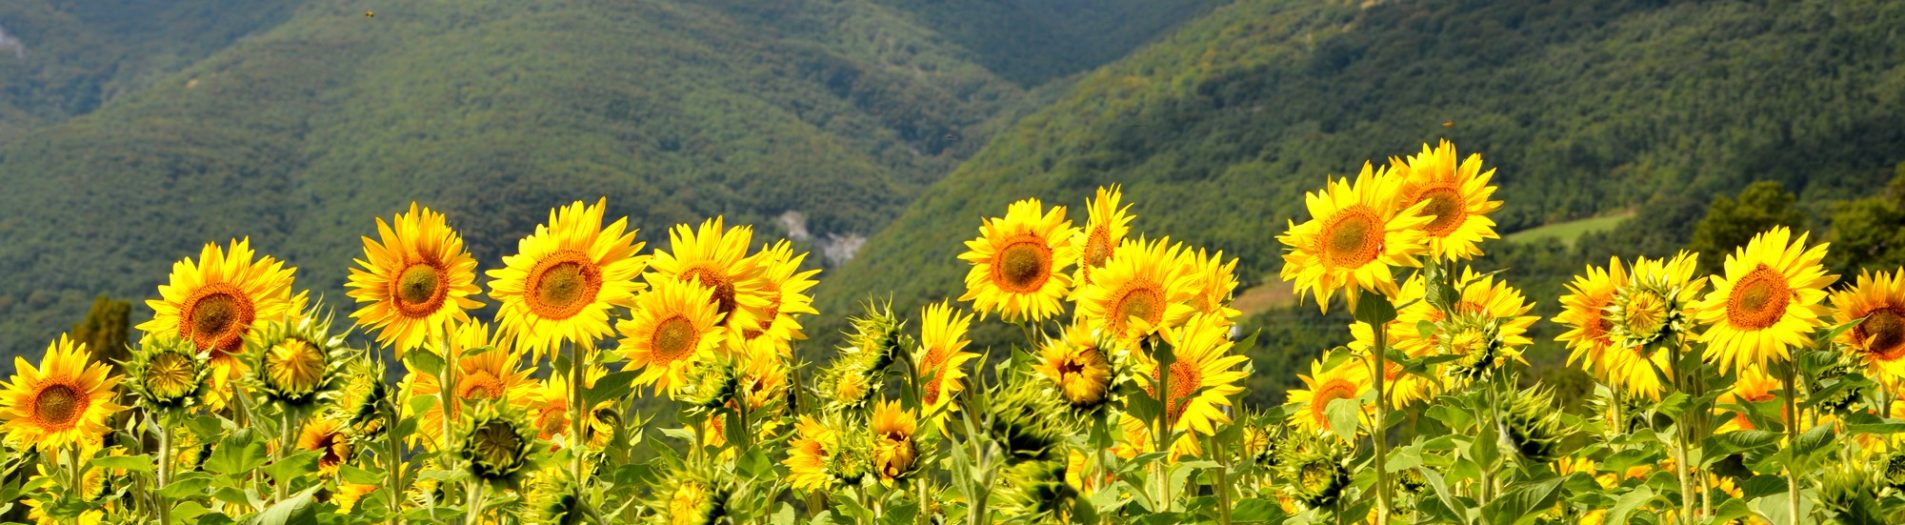 Among the sunflowers and to Castello